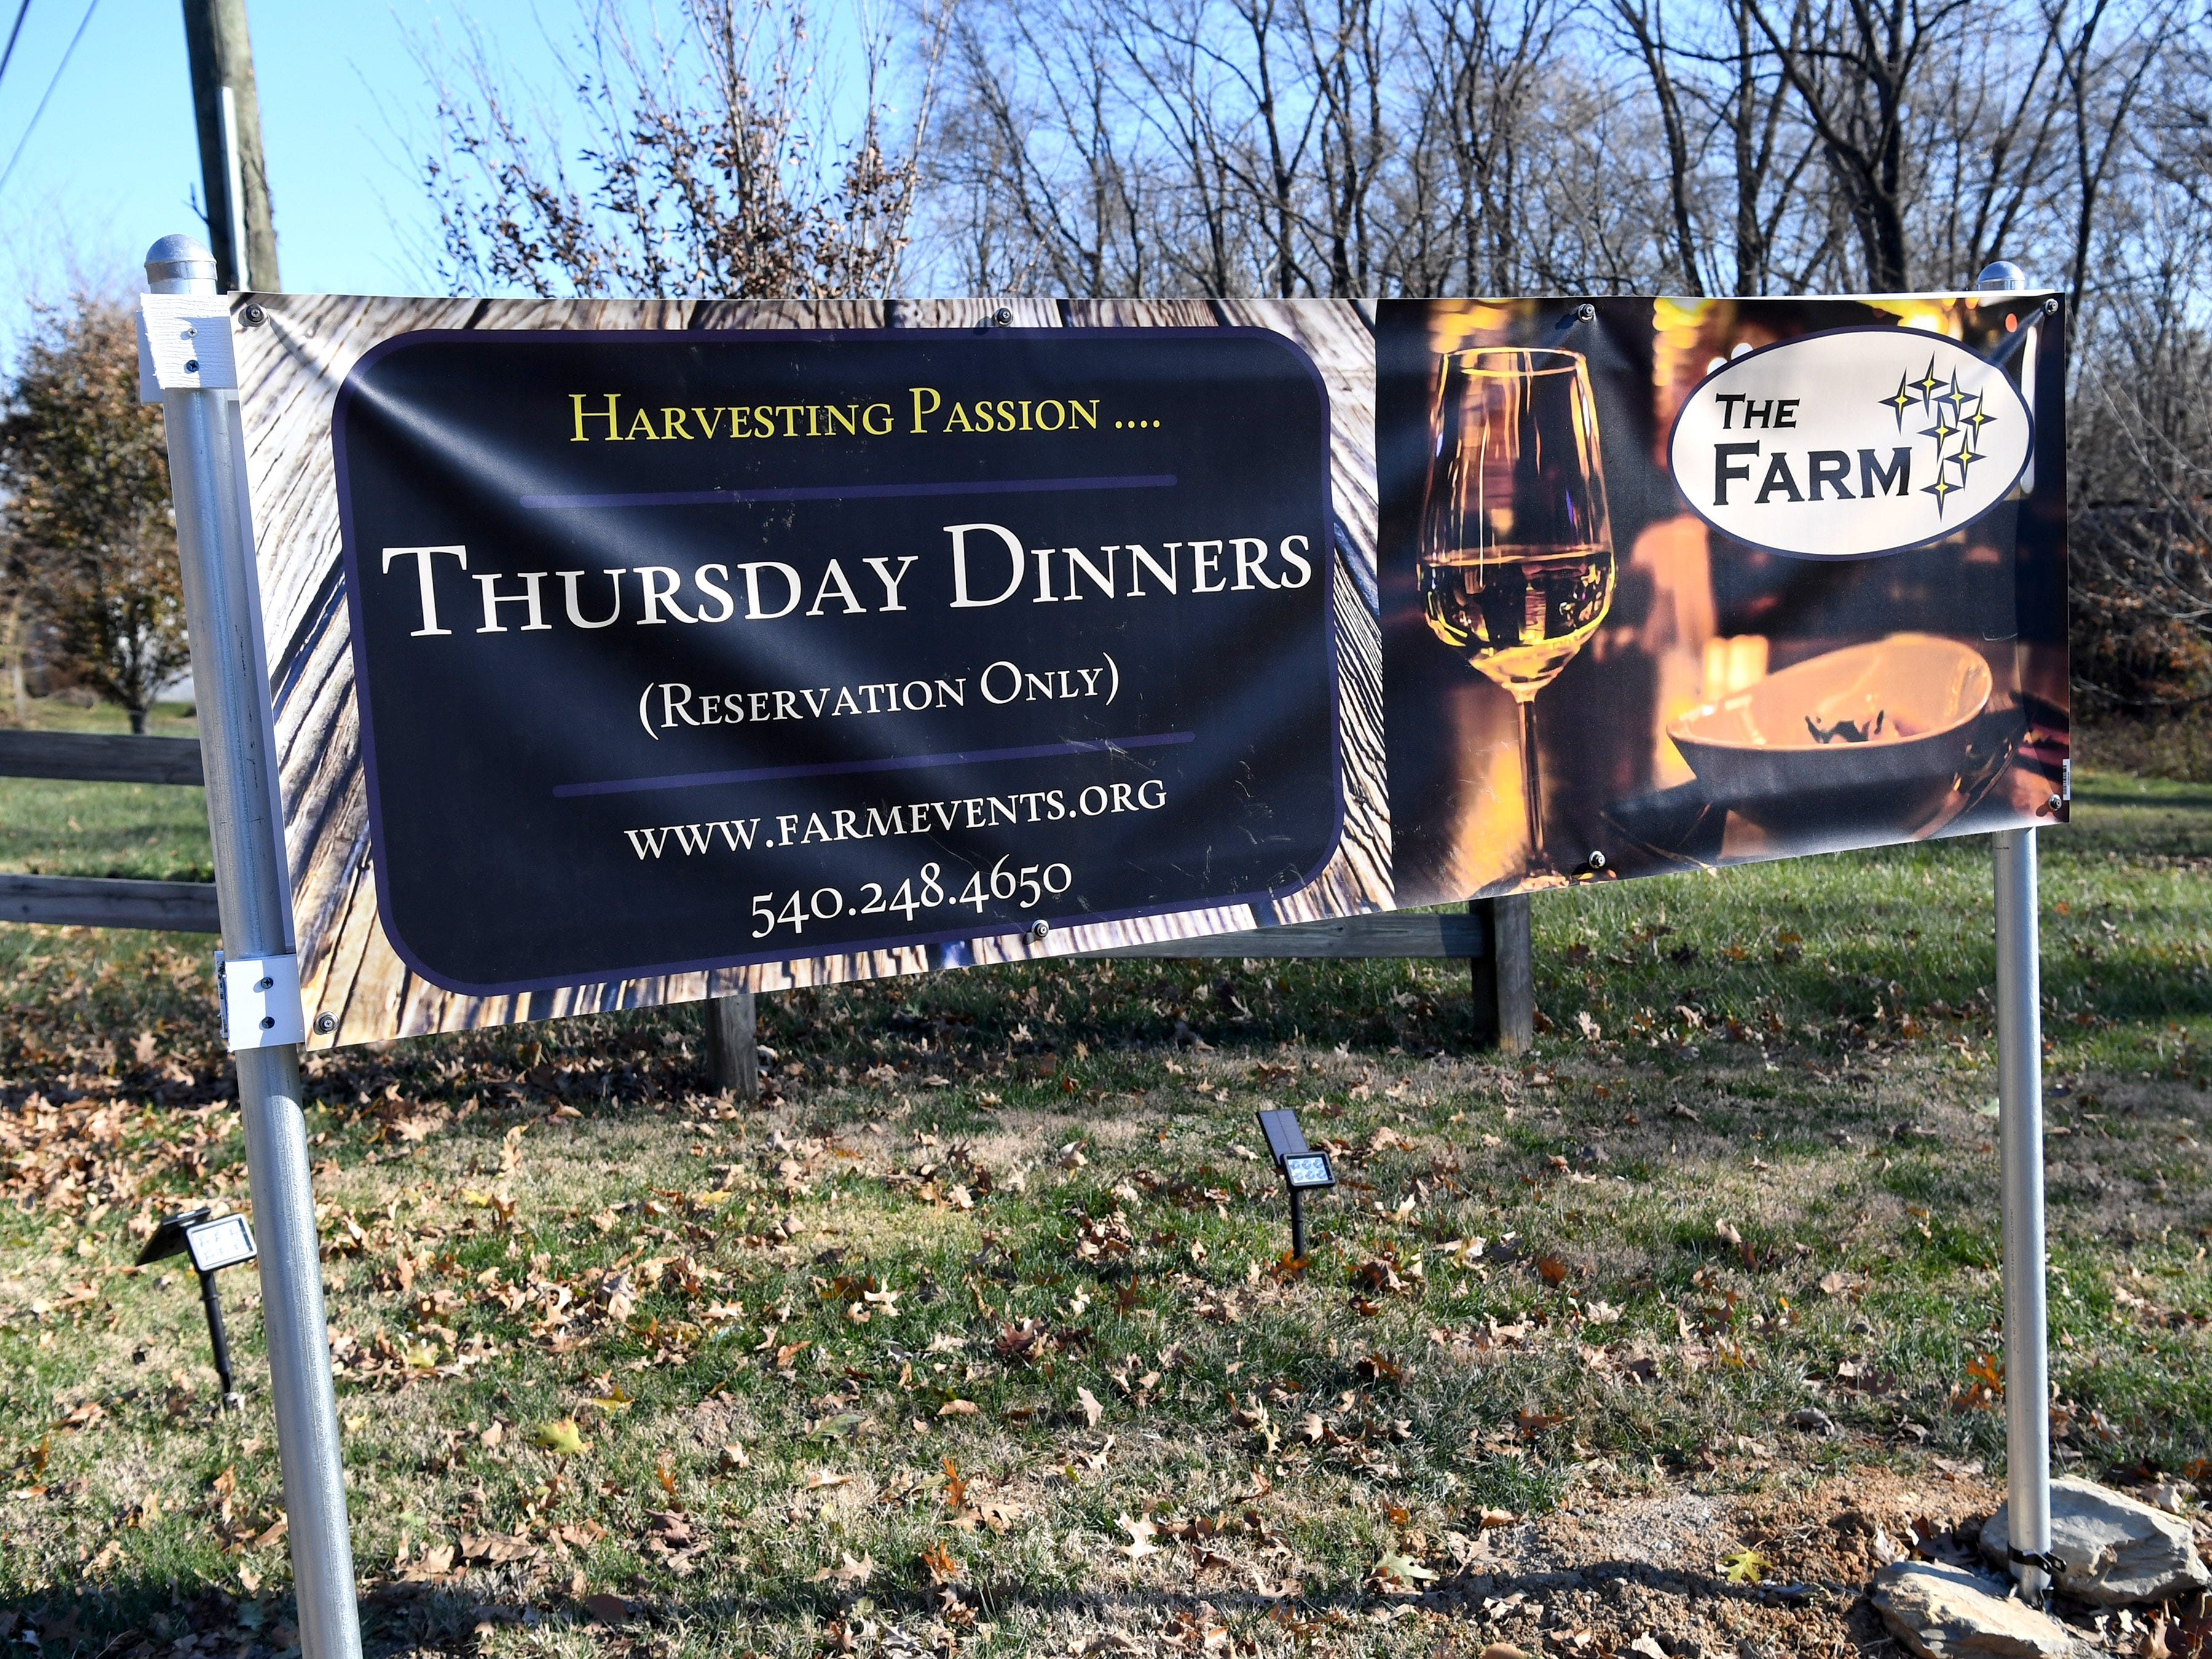 A sign advertising Thursday dinners (reservation only at the Inn at WestShire Farms in Staunton.